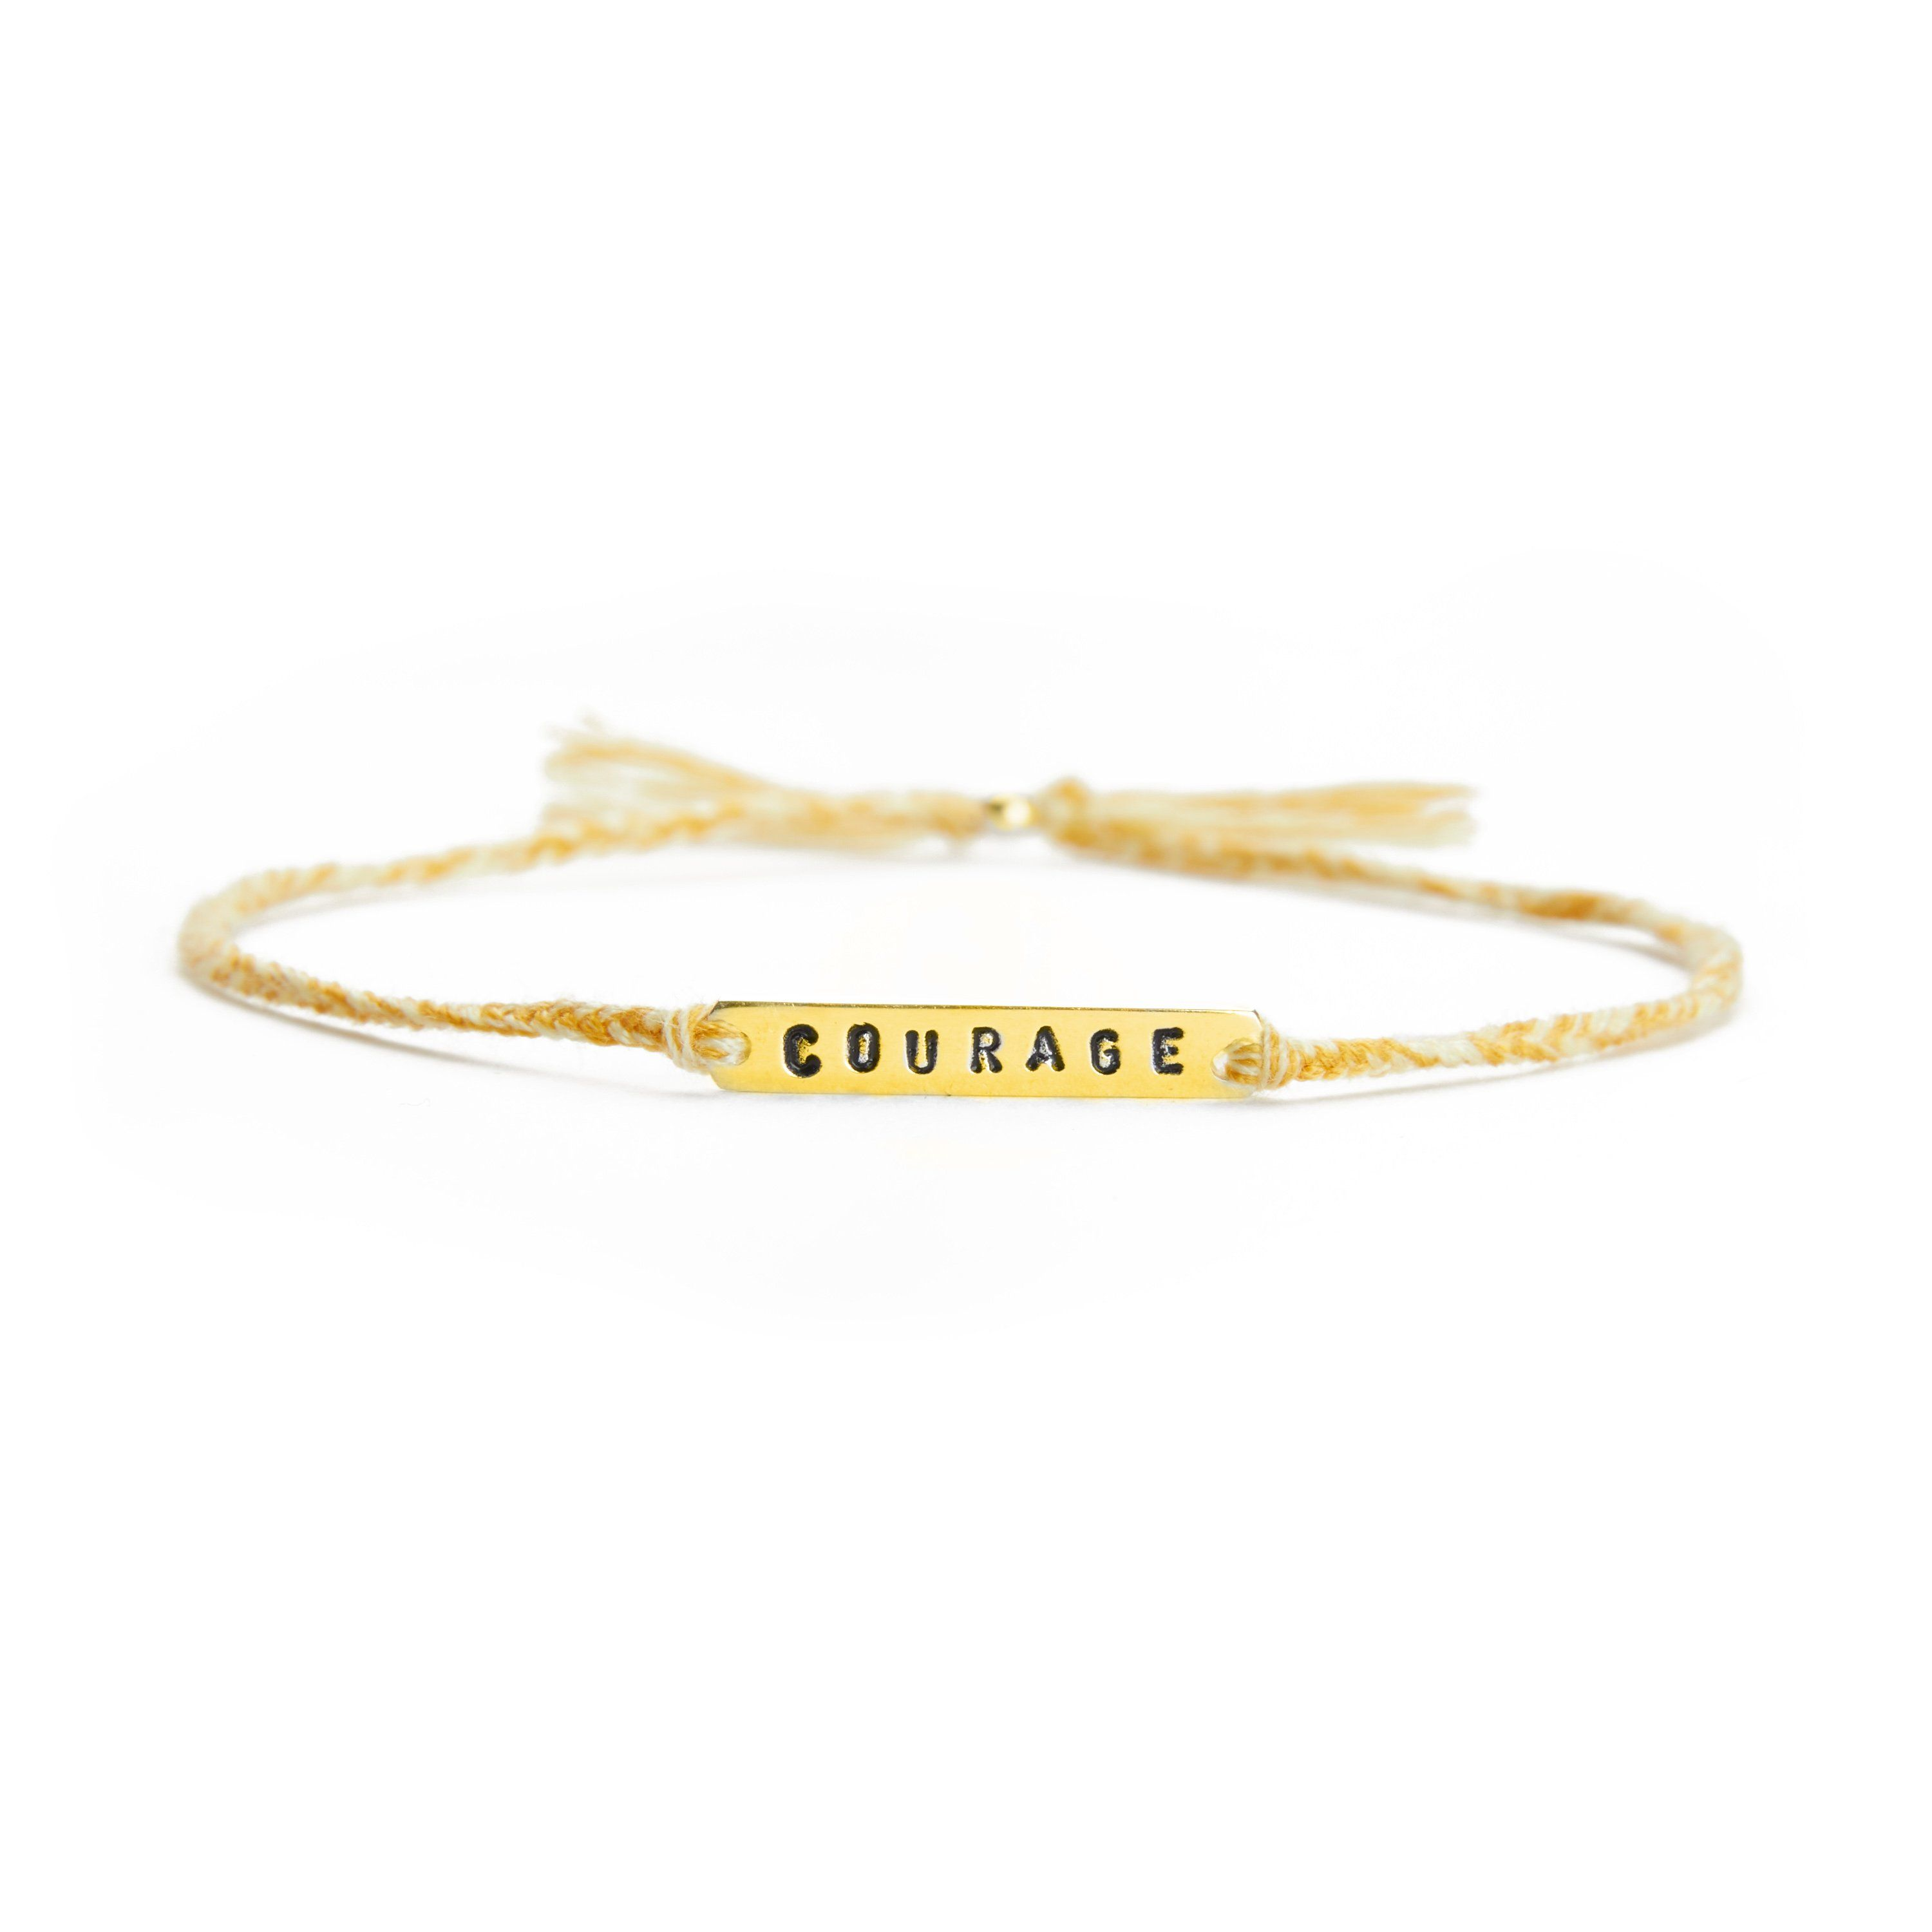 Courage yellow mix gold handmade bracelet from Santai.no